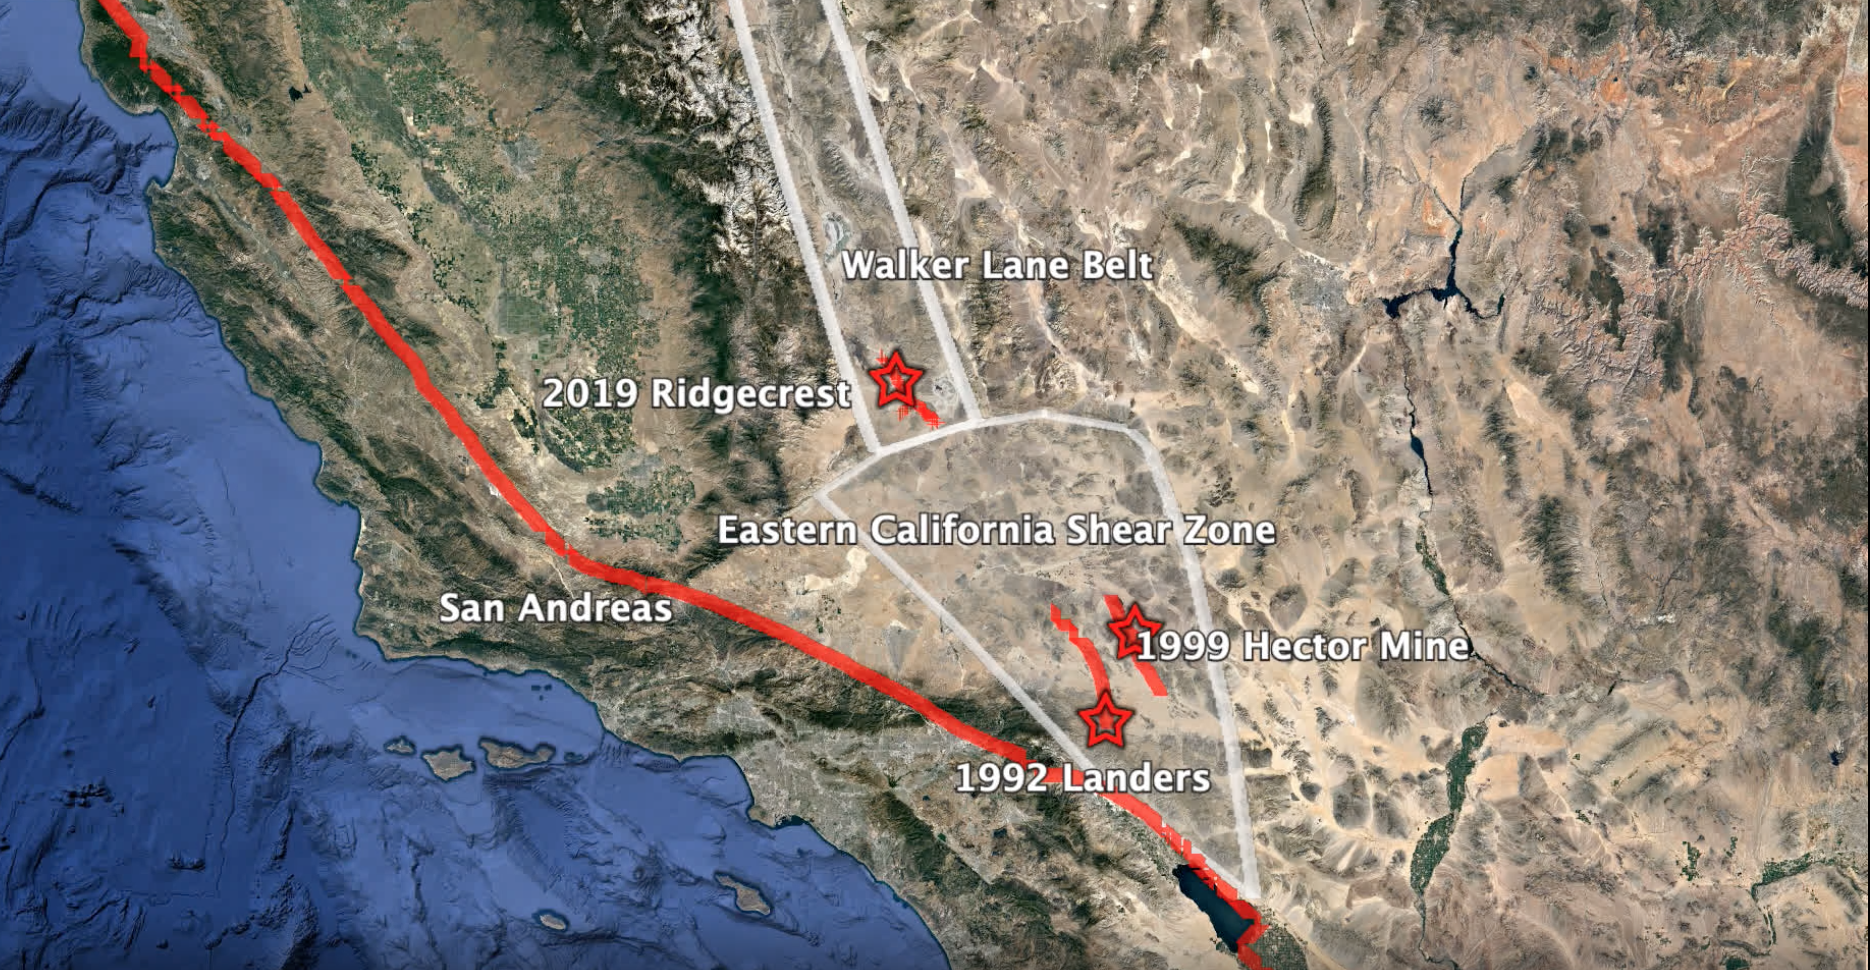 Location of the 2019 Ridgecrest earthquake, in the San Andreas Fault area of California.